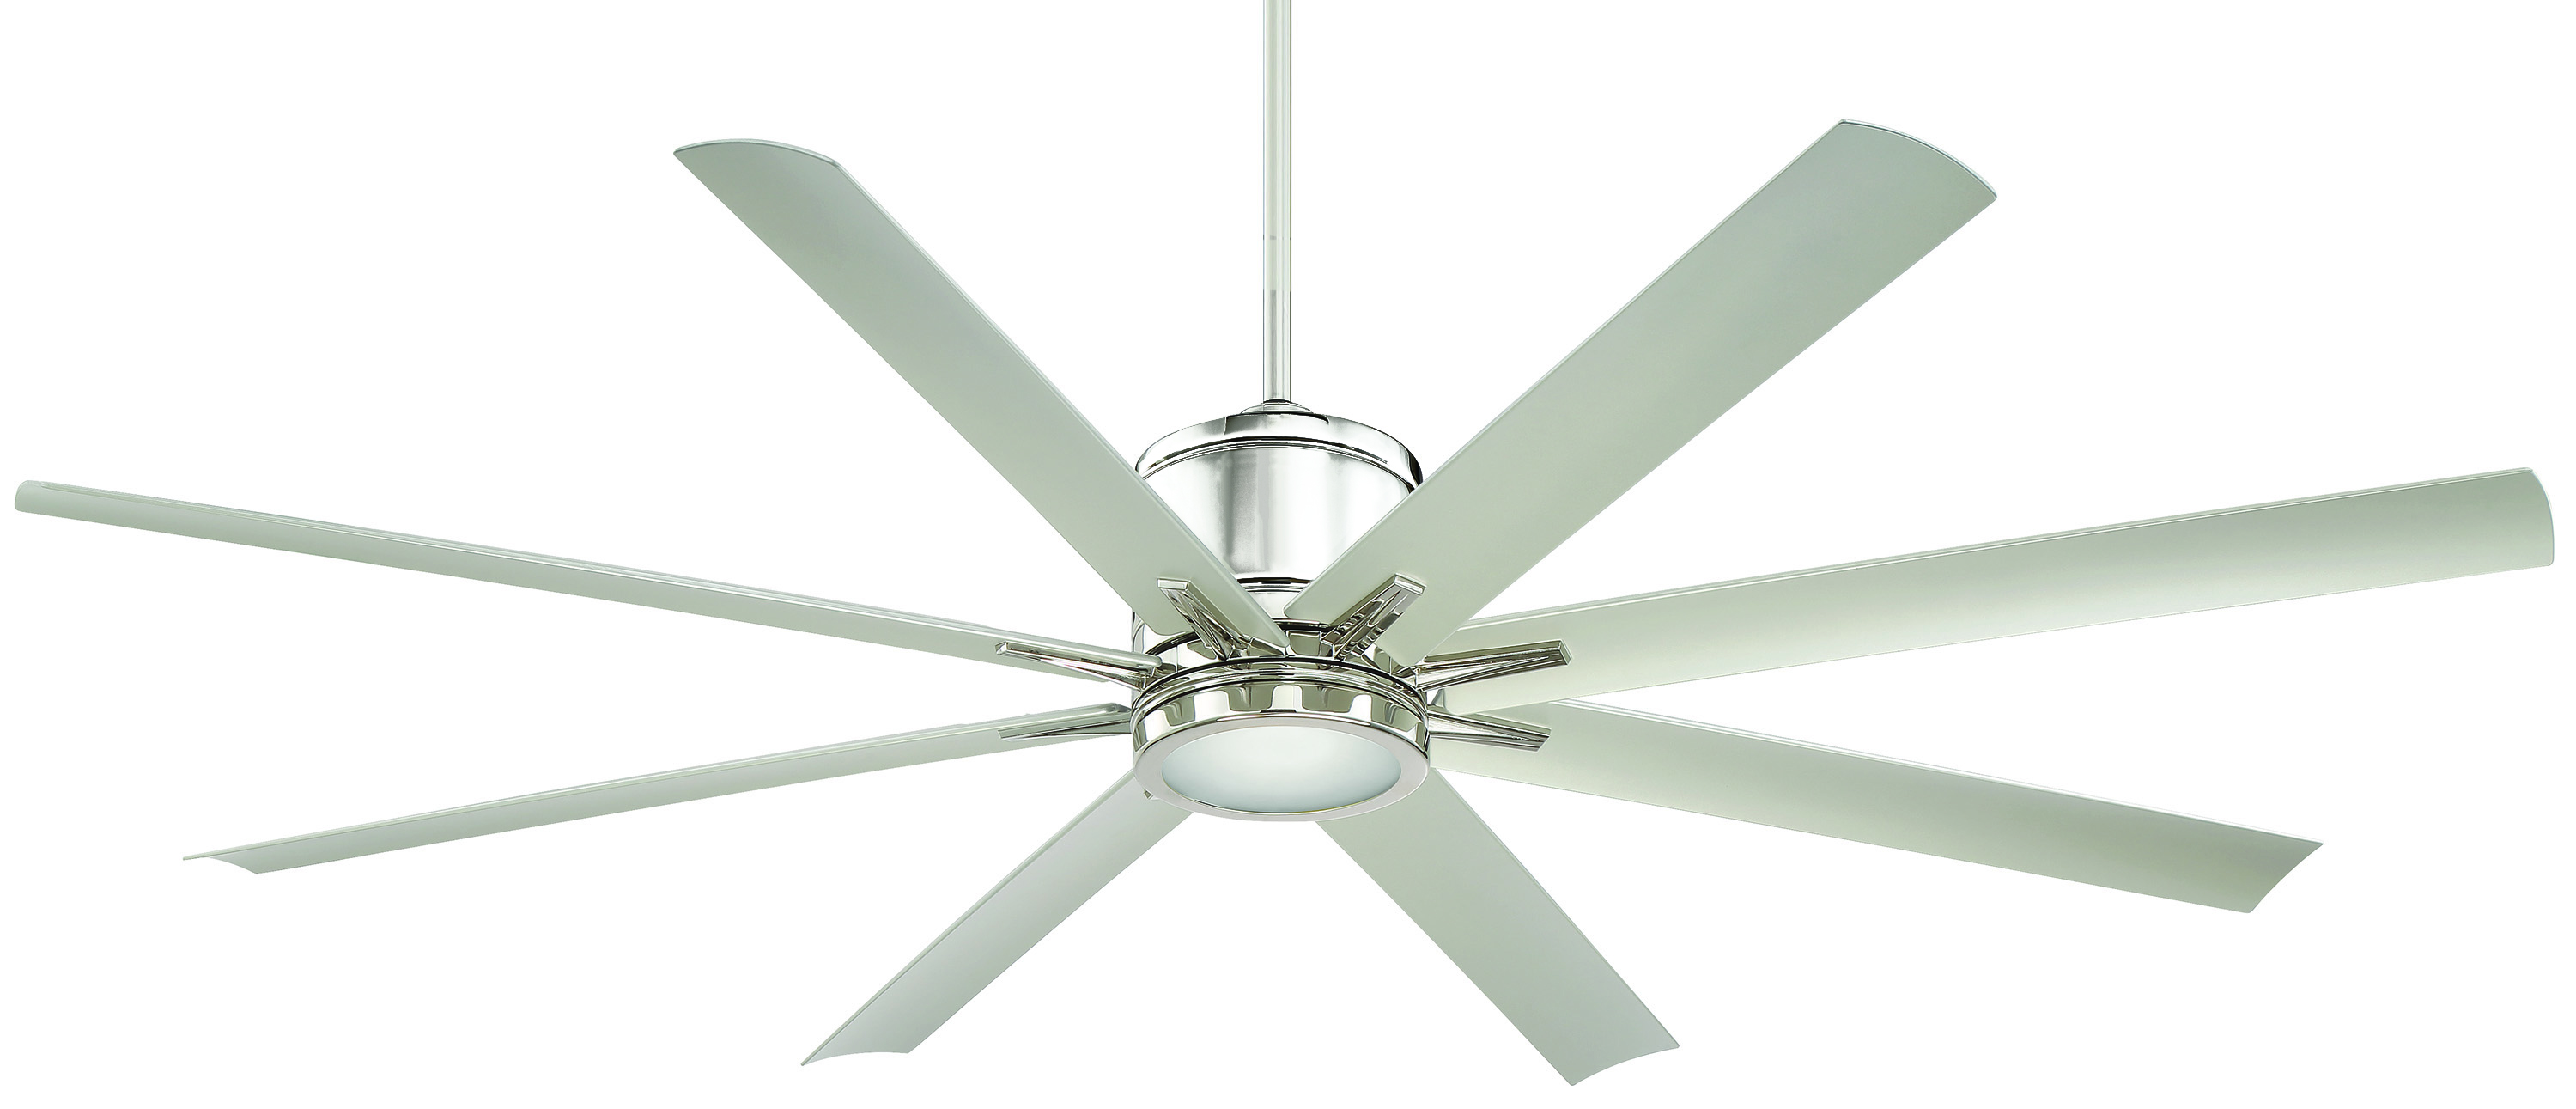 Regency Vantage ceiling fan